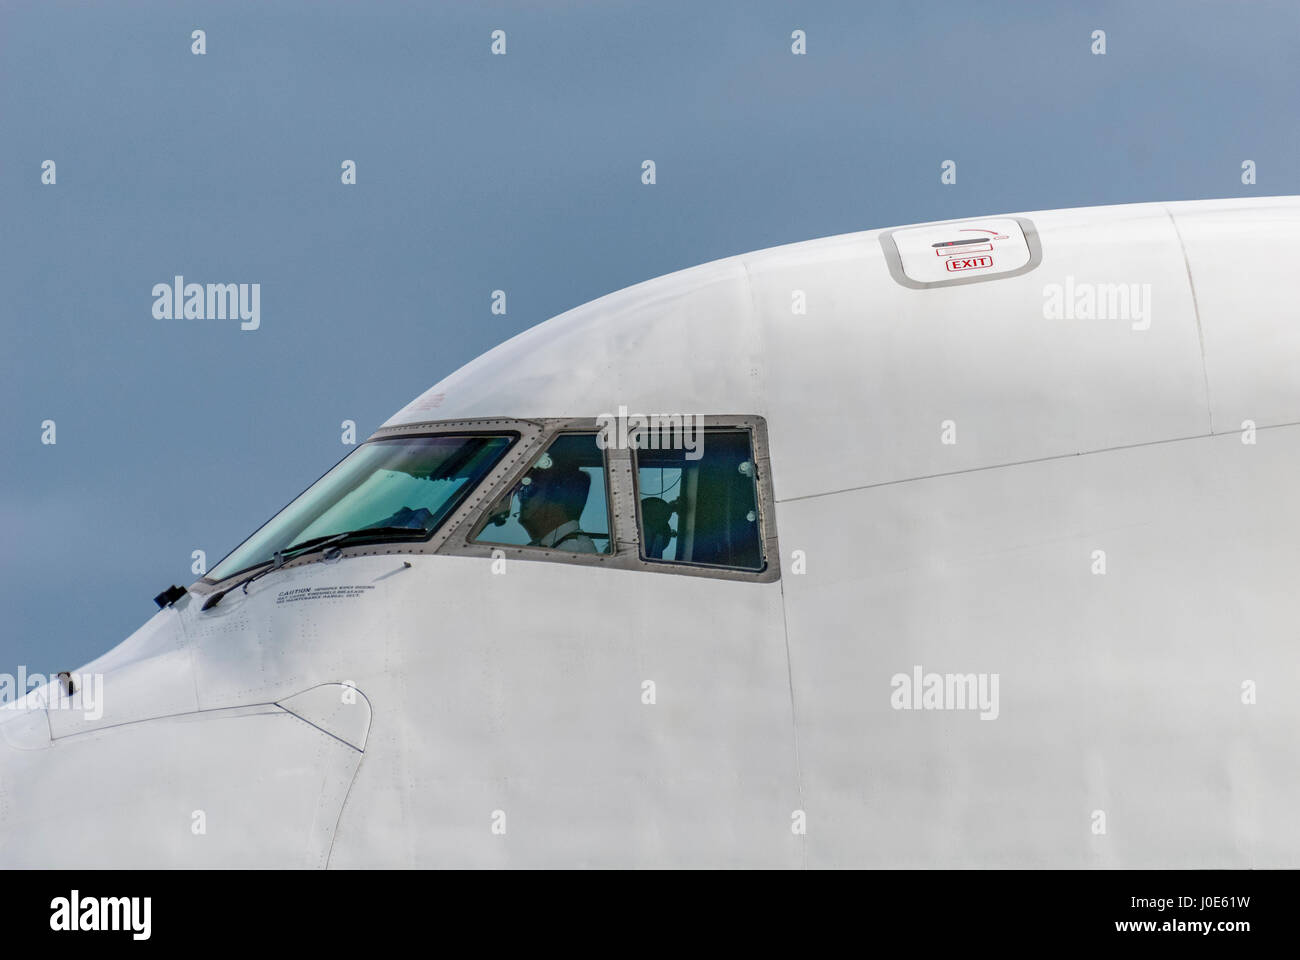 Jumbo jet Boeing 747 cockpit with pilots visible. Close uo. - Stock Image